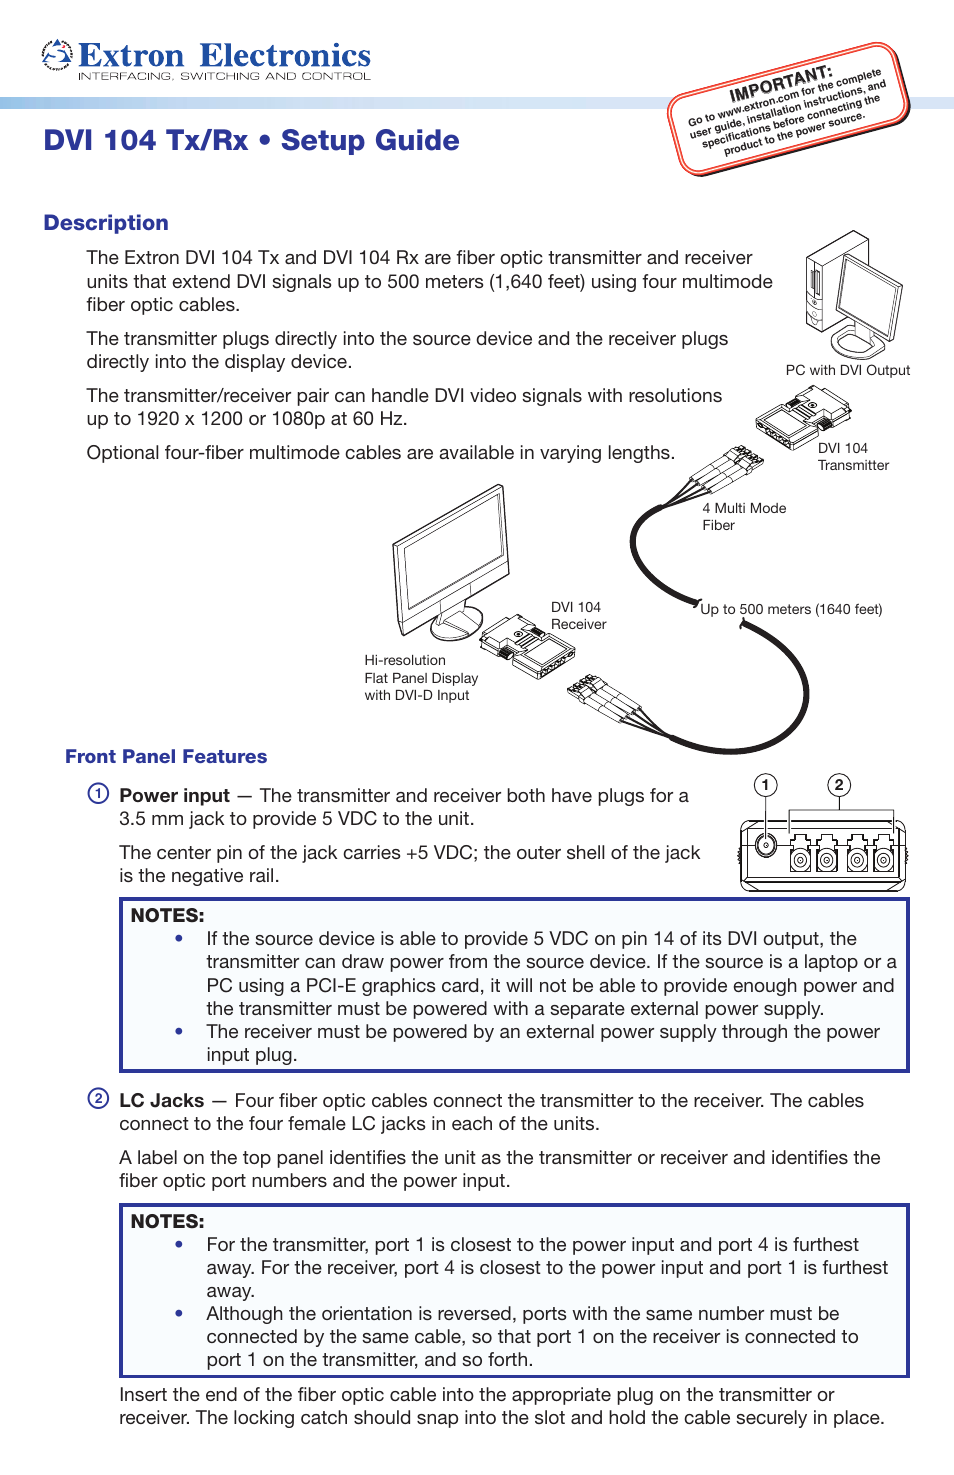 Extron Electronics DVI 104 Tx_Rx Setup Guide User Manual | 4 pages